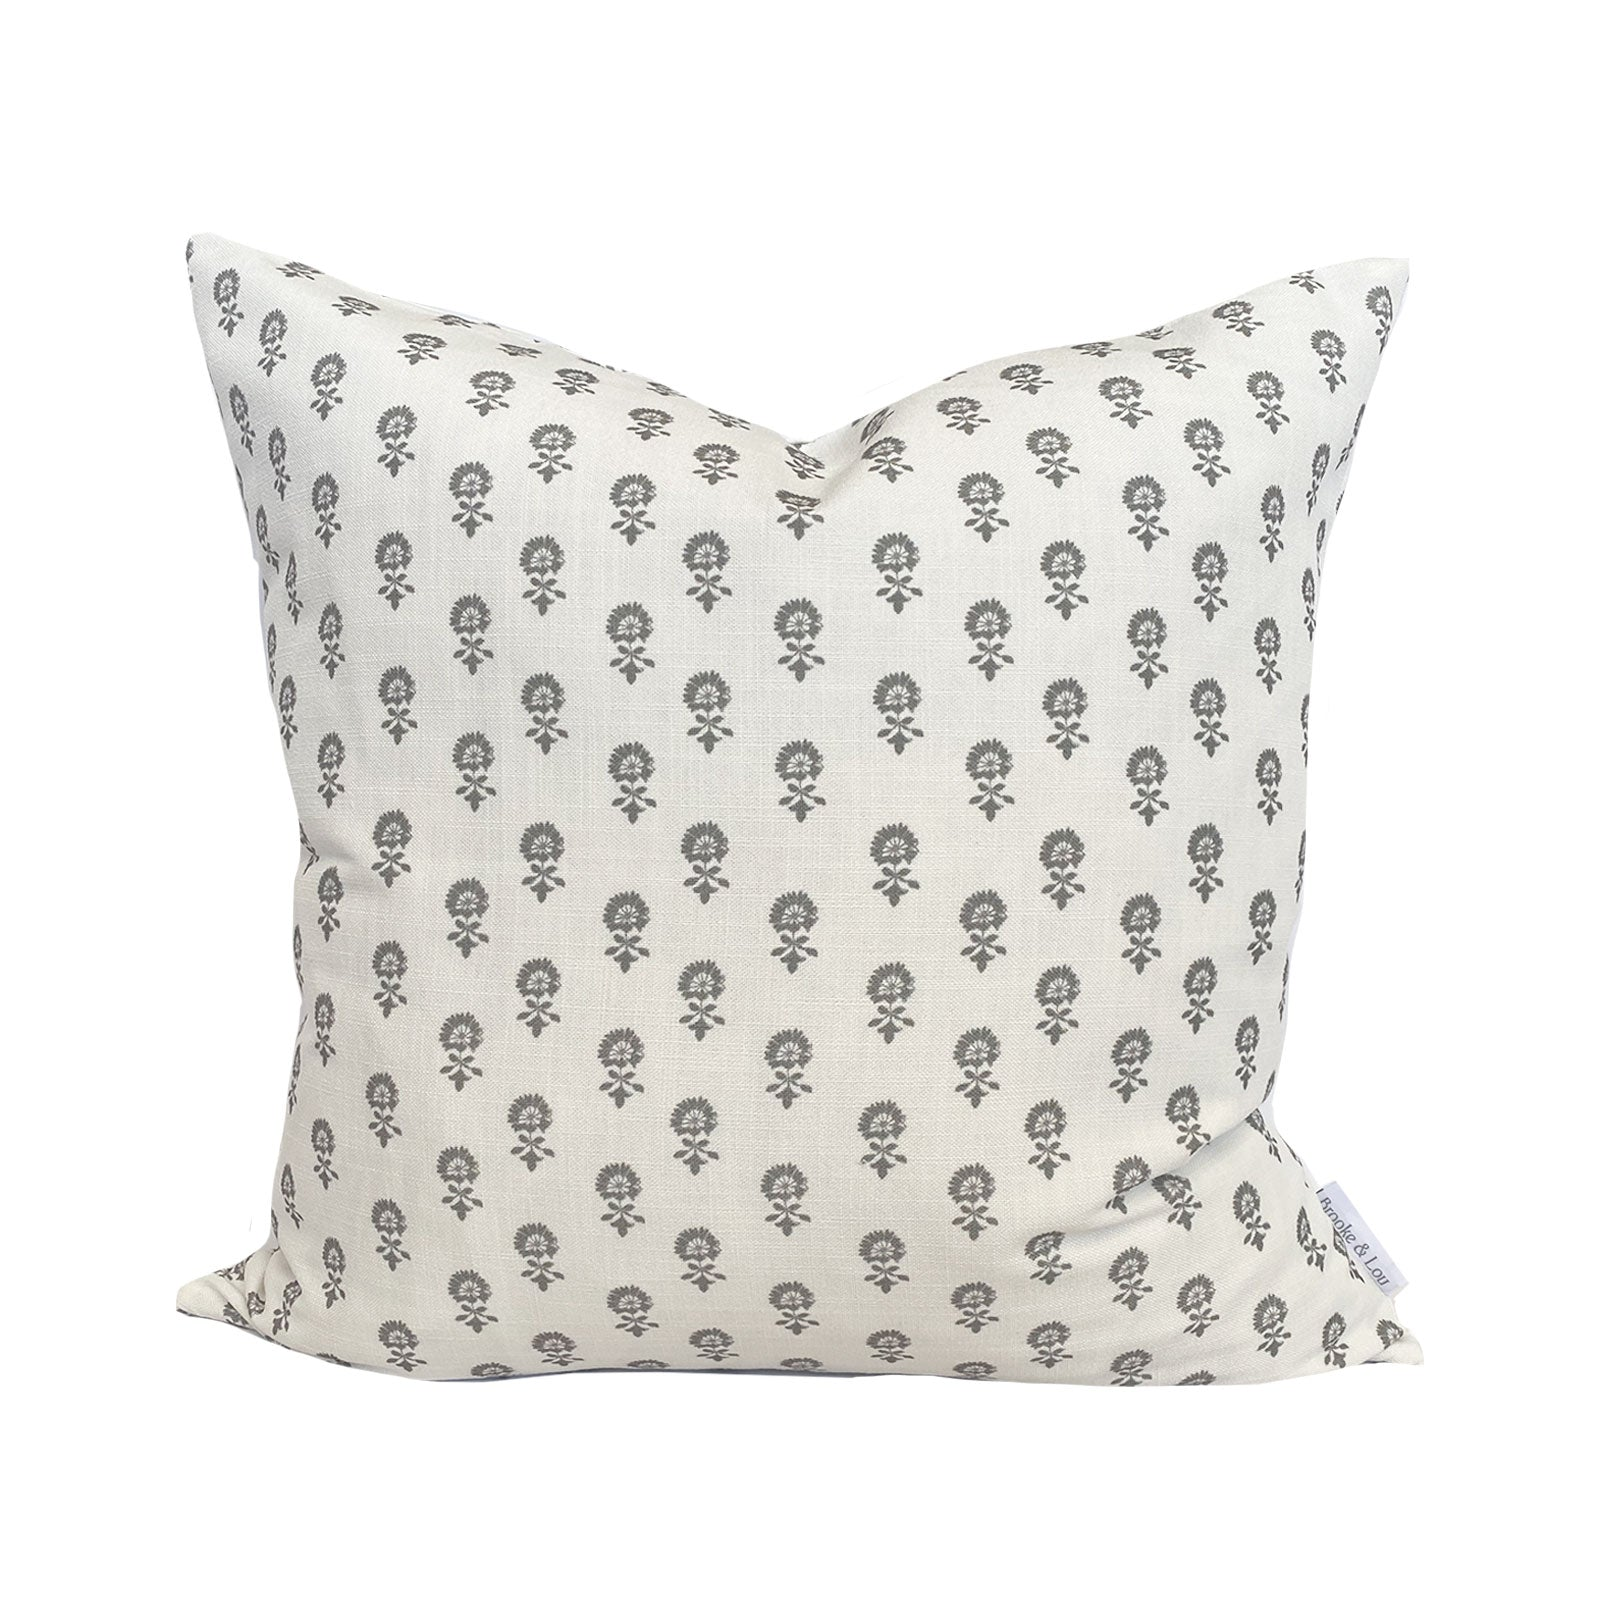 Lyla Pillow in Charcoal